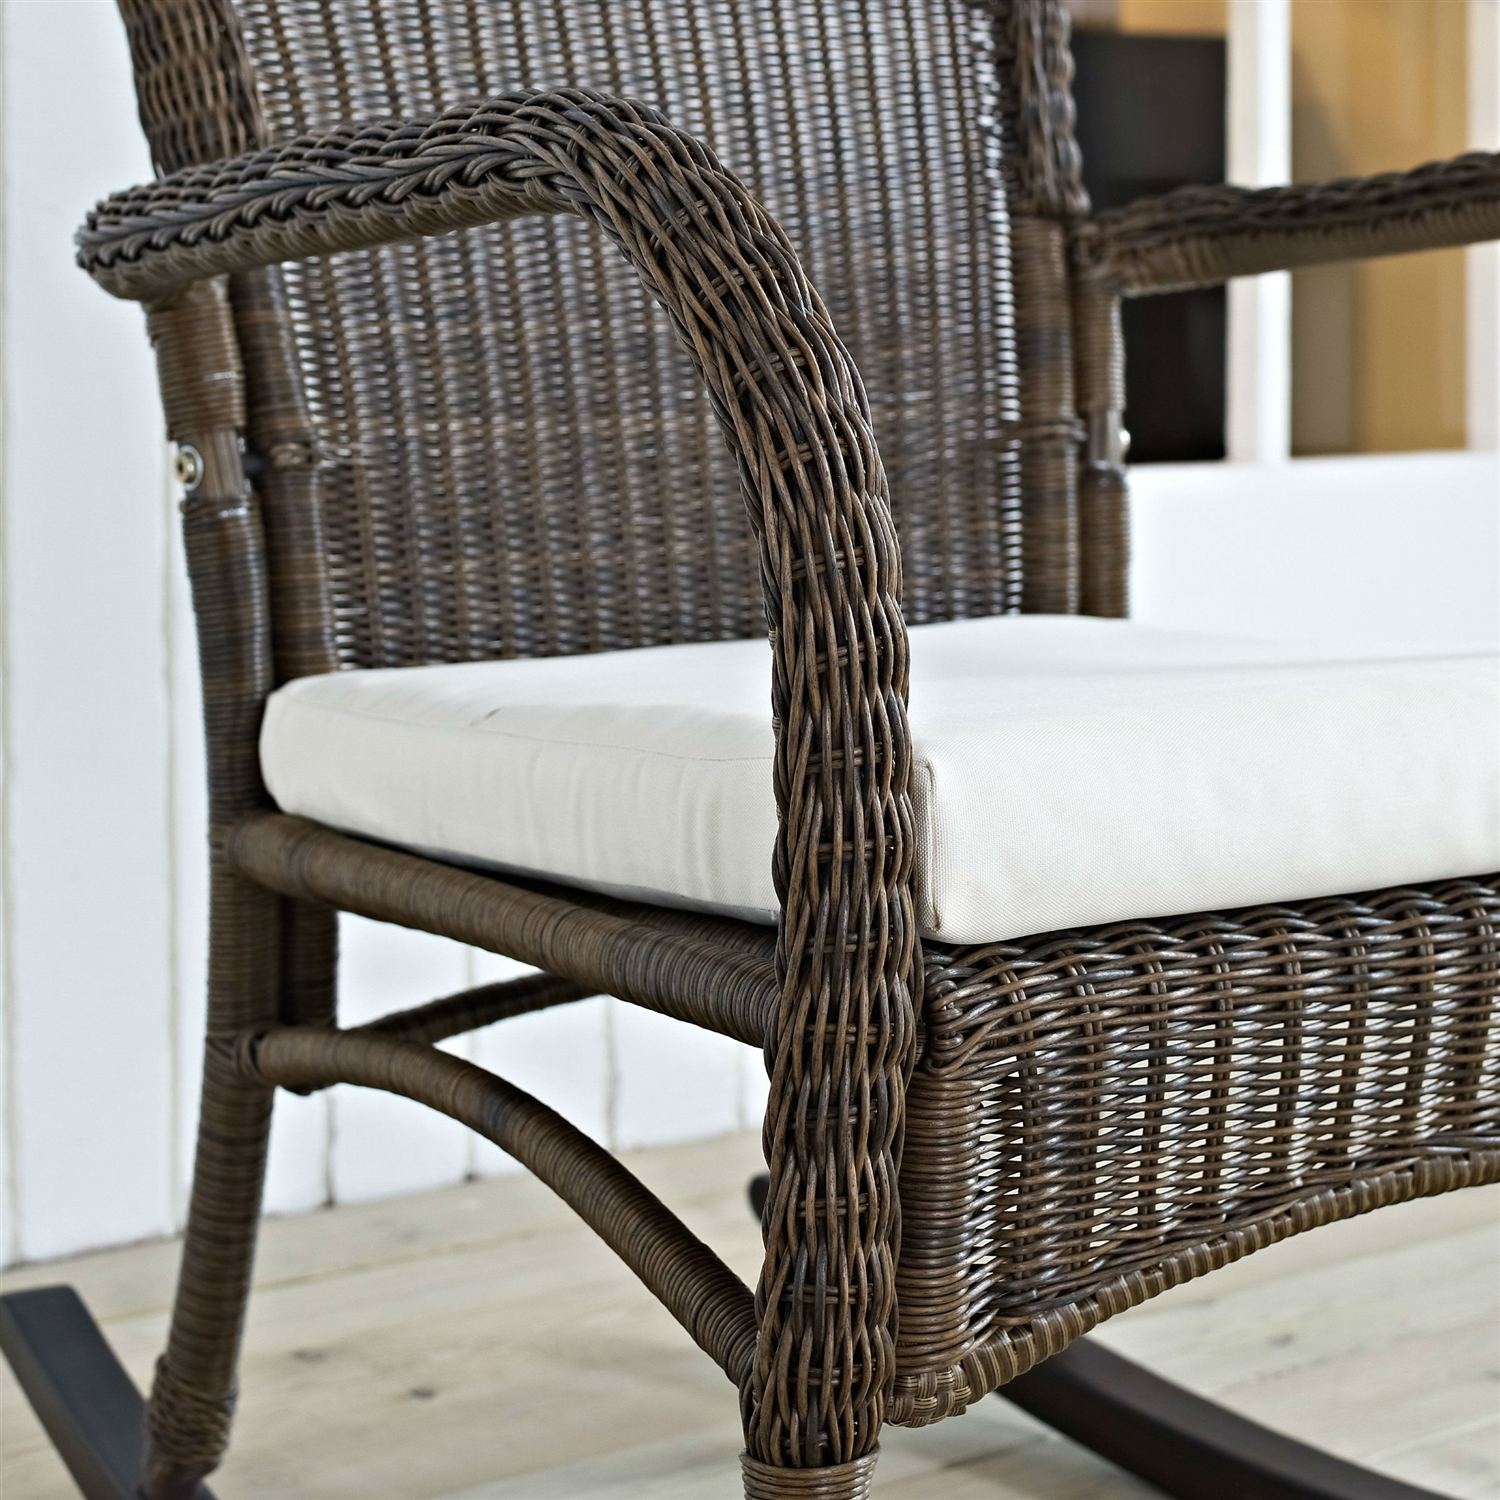 Indoor Wicker Rocking Chair Indoor Outdoor Patio Porch Mocha Wicker Rocking Chair With